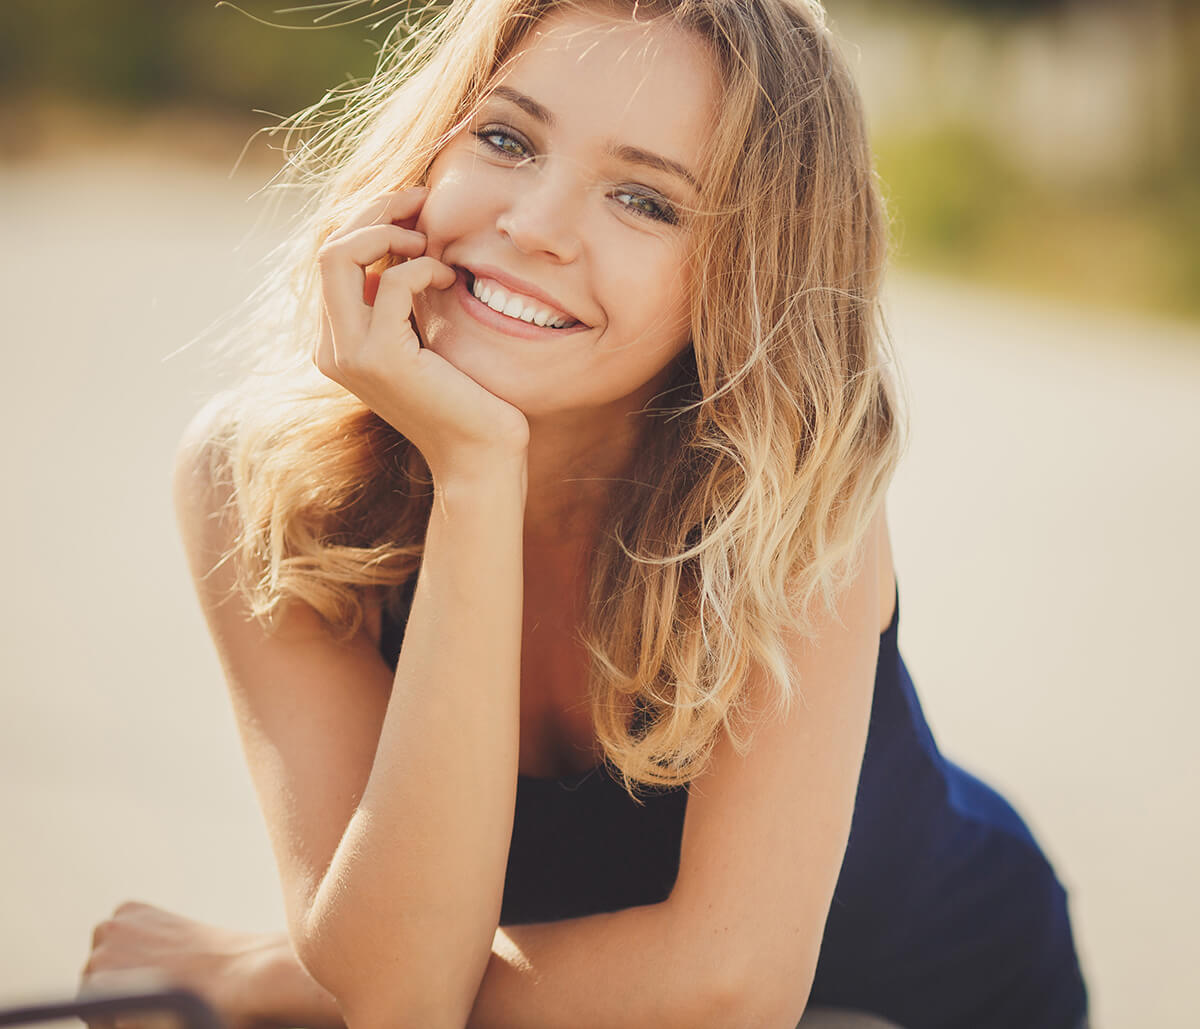 Dermatologist Offers Non-surgical Skin Tightening Procedures for Treatment of Skin Laxity in Washington, DC Area